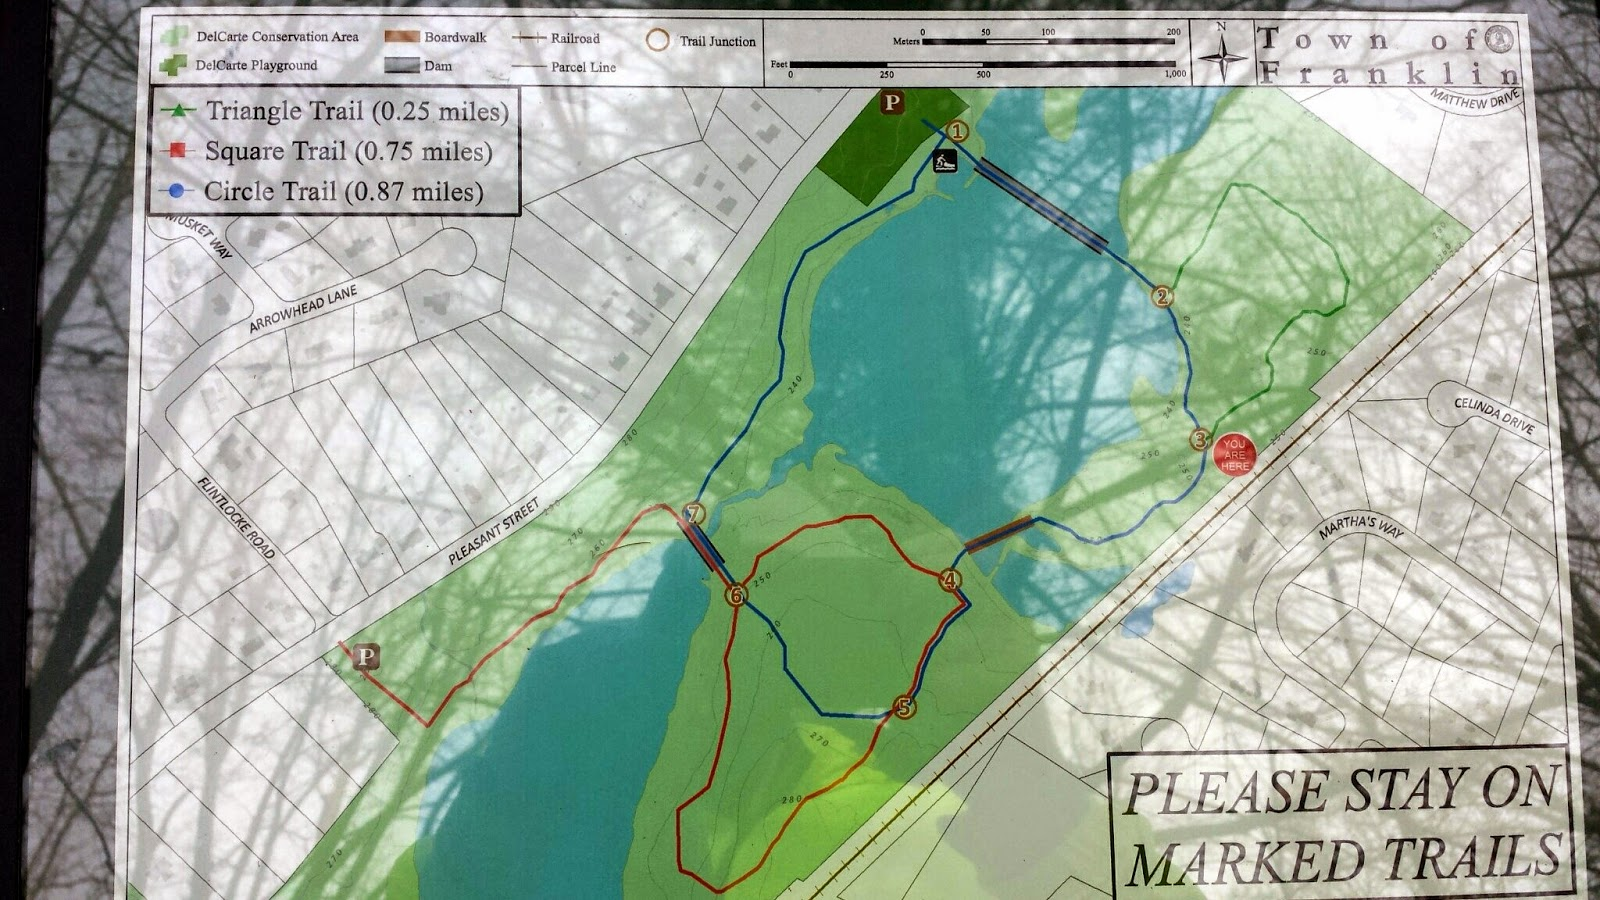 full trail map (with unavoidable glare and shadows)